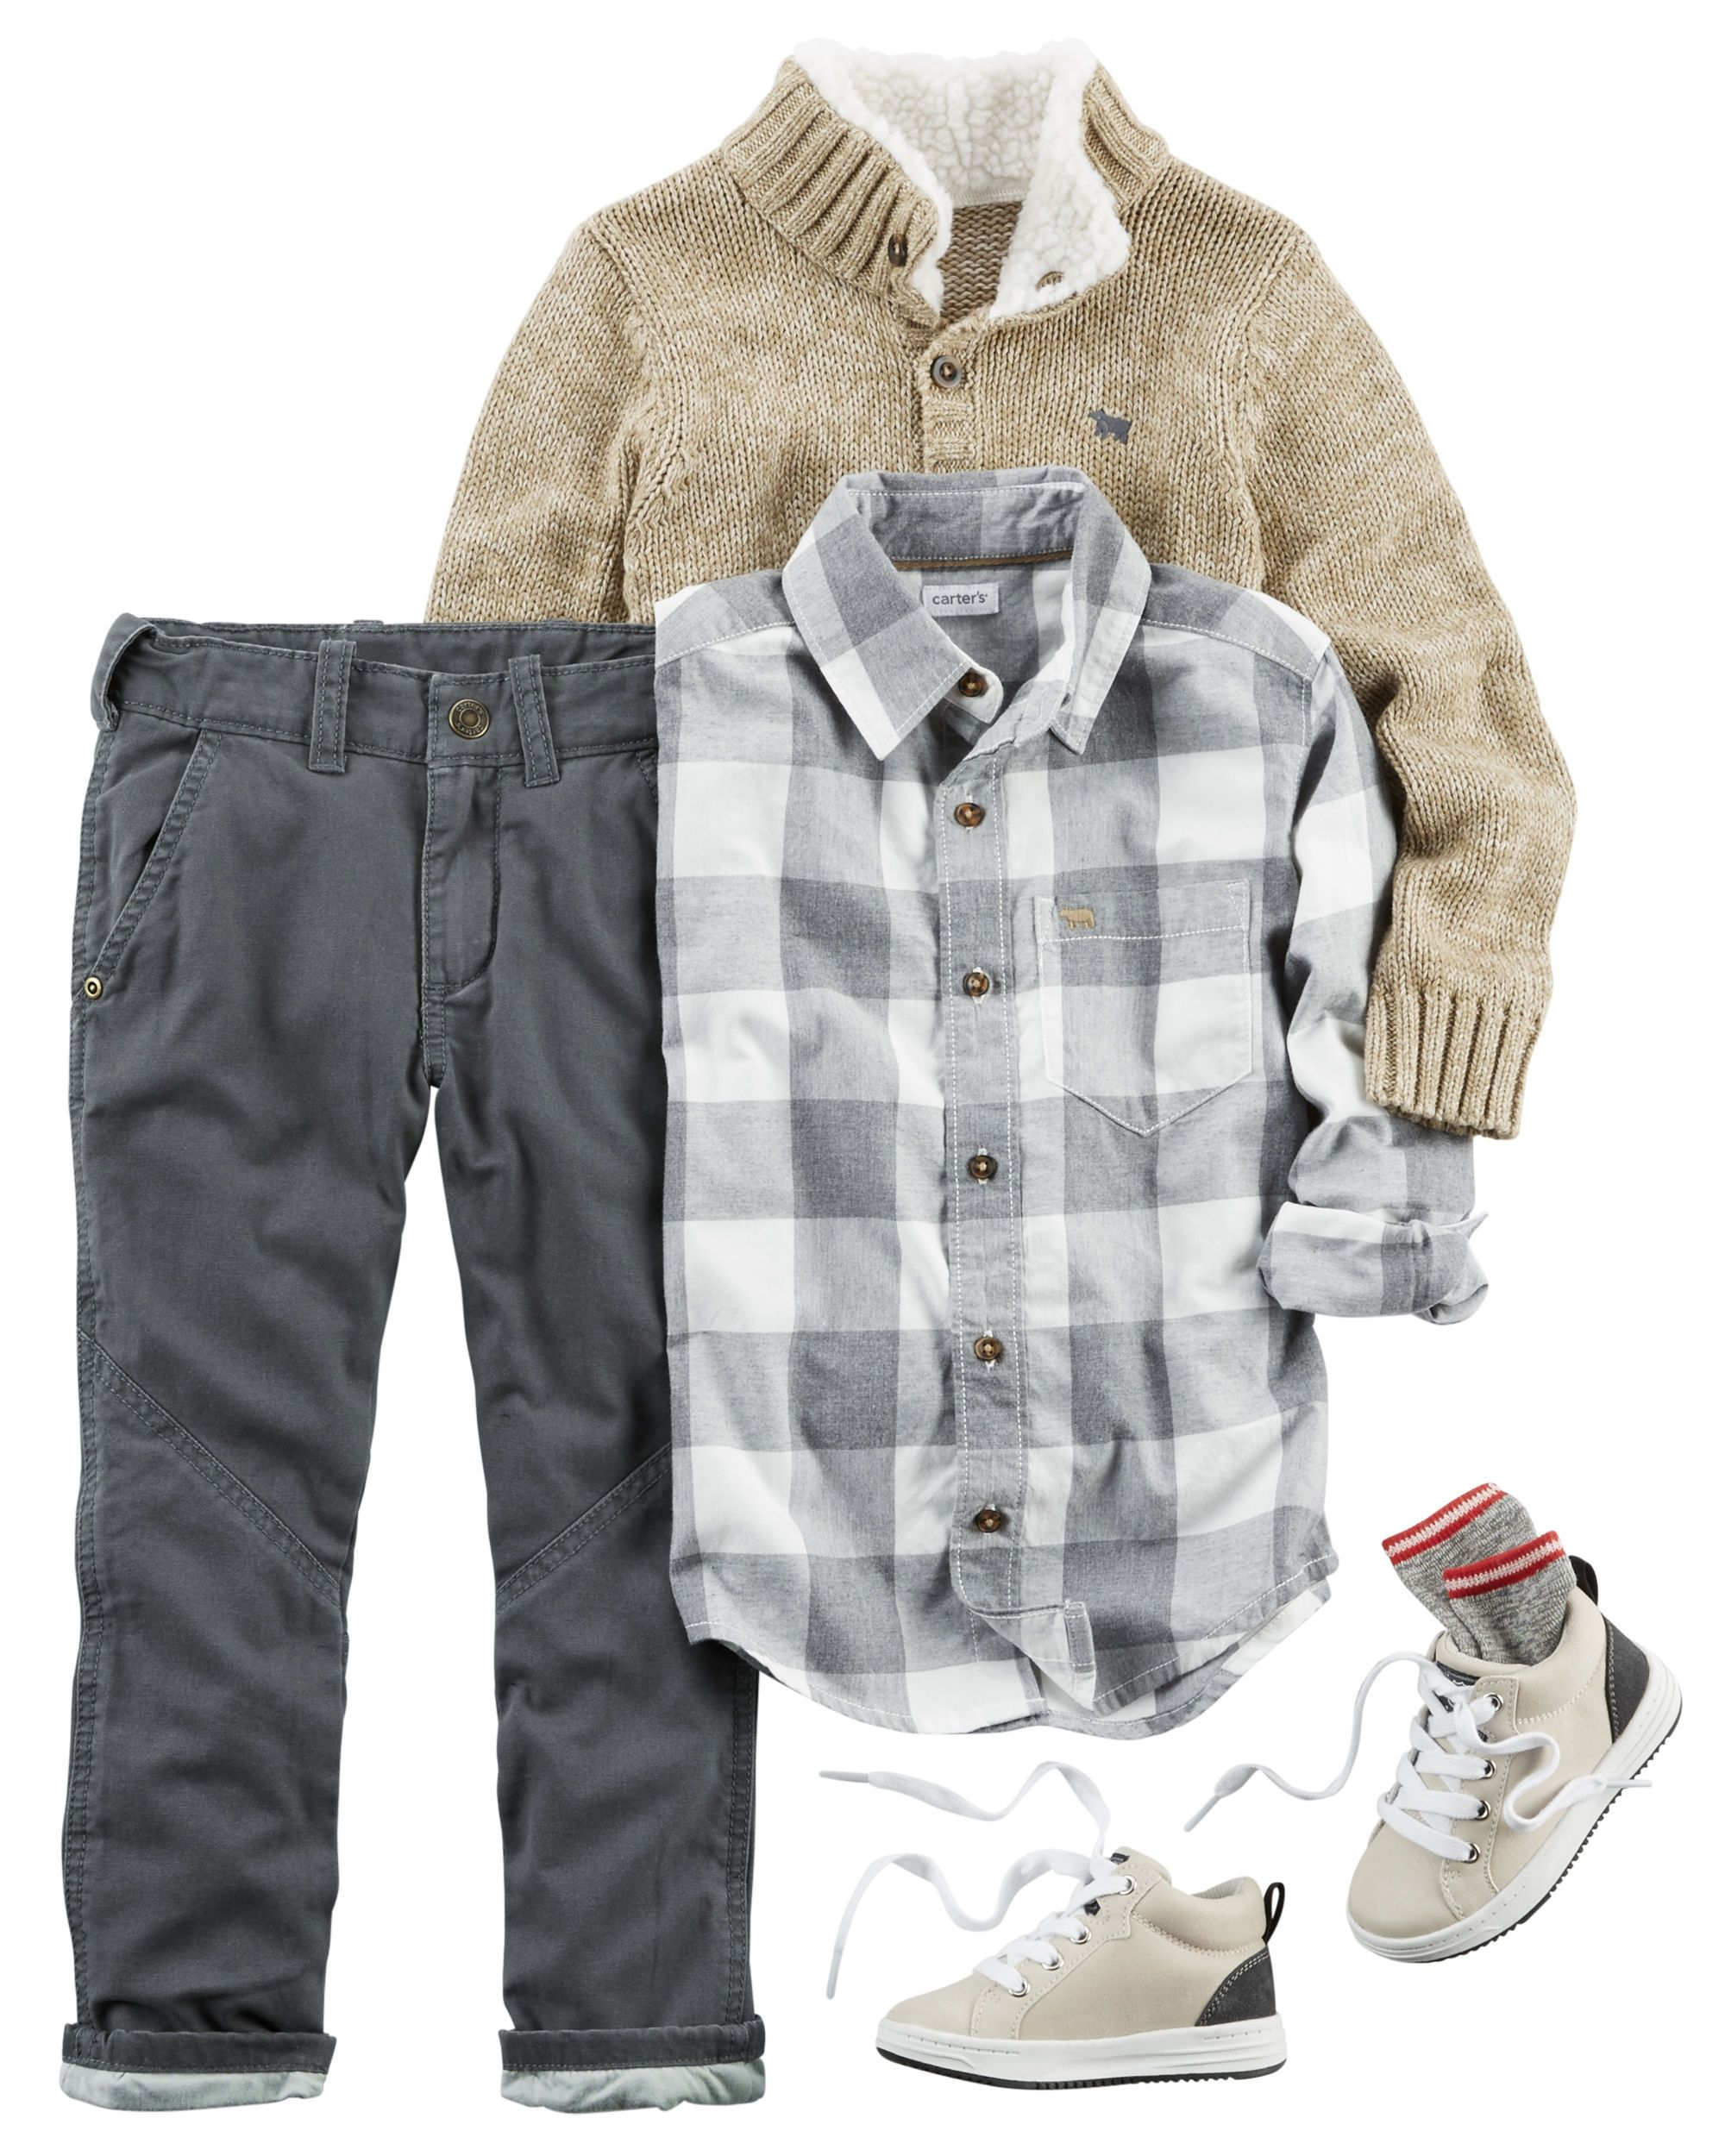 Toddler Boy CAROCT7TF16 from Carters Shop clothing